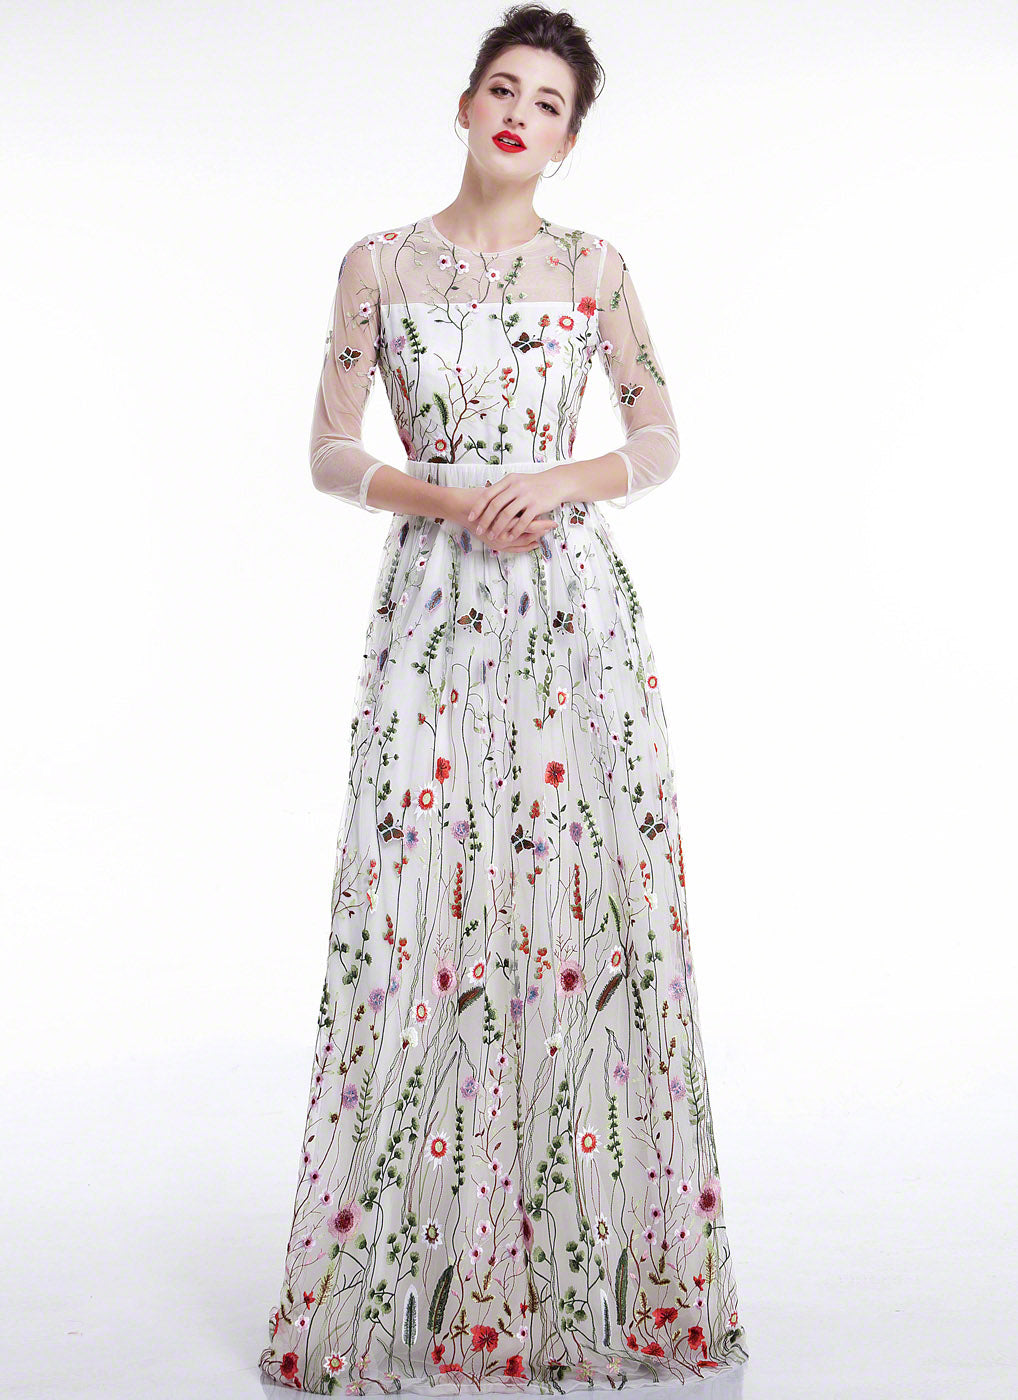 Black tulle floor length dress with colorful floral